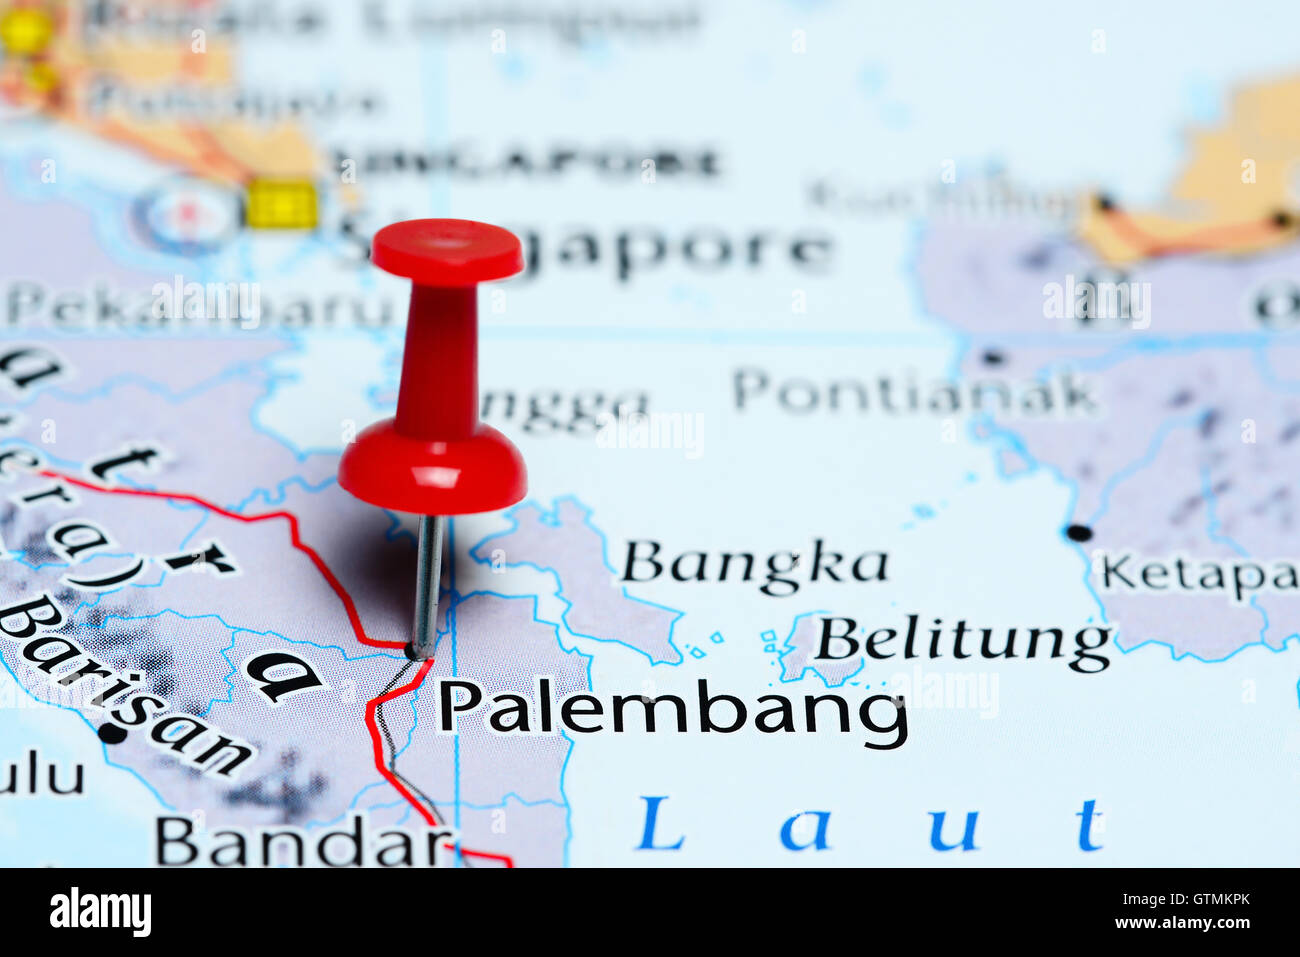 Palembang pinned on a map of Indonesia - Stock Image